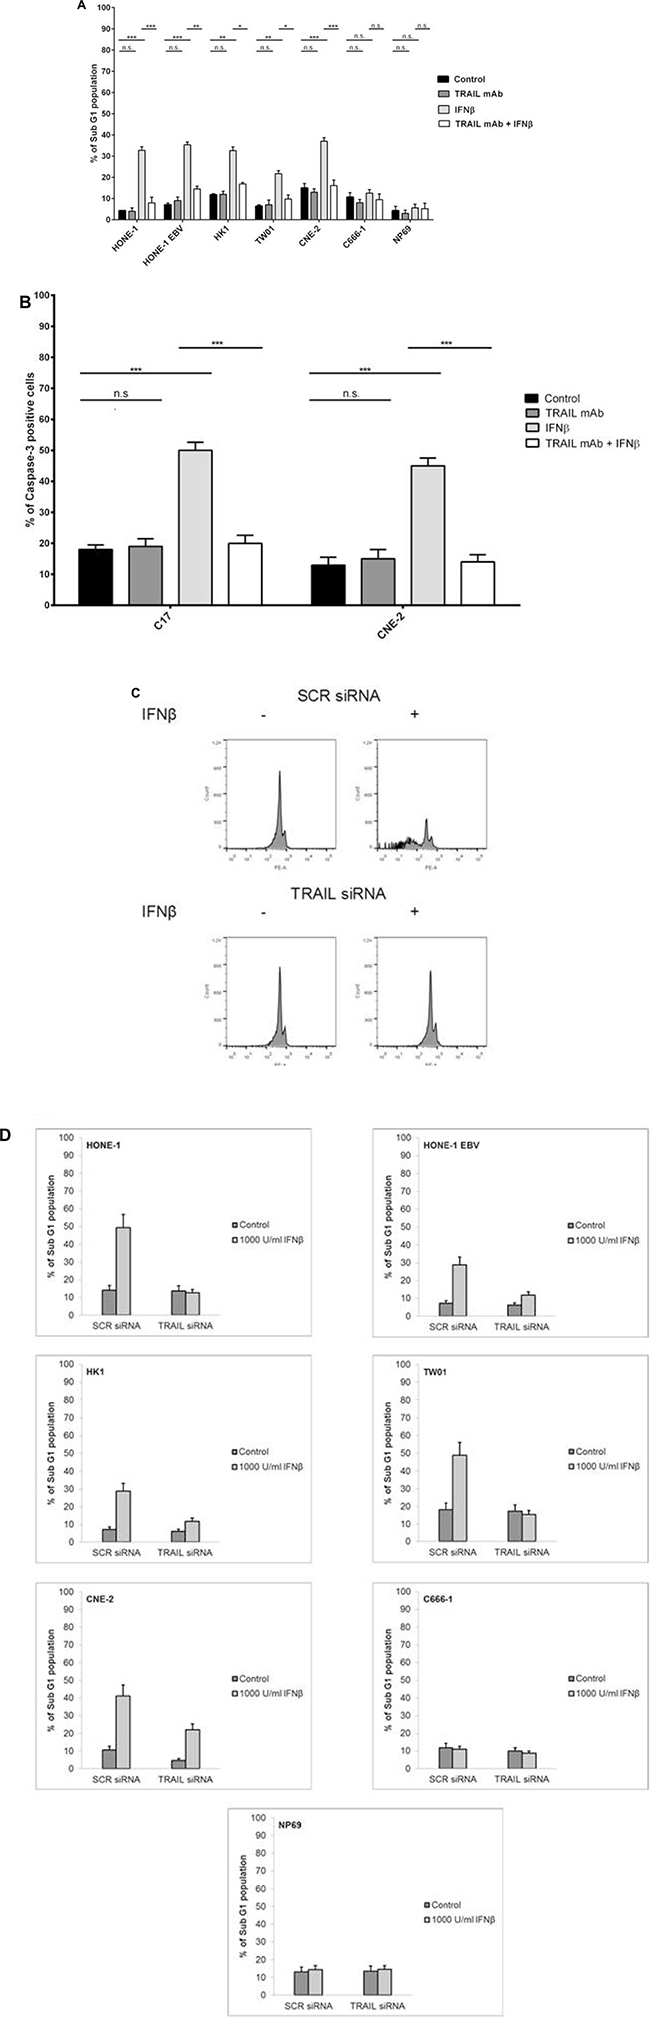 Inhibition of TRAIL inhibits IFNβ-induced apoptosis in NPC cells.